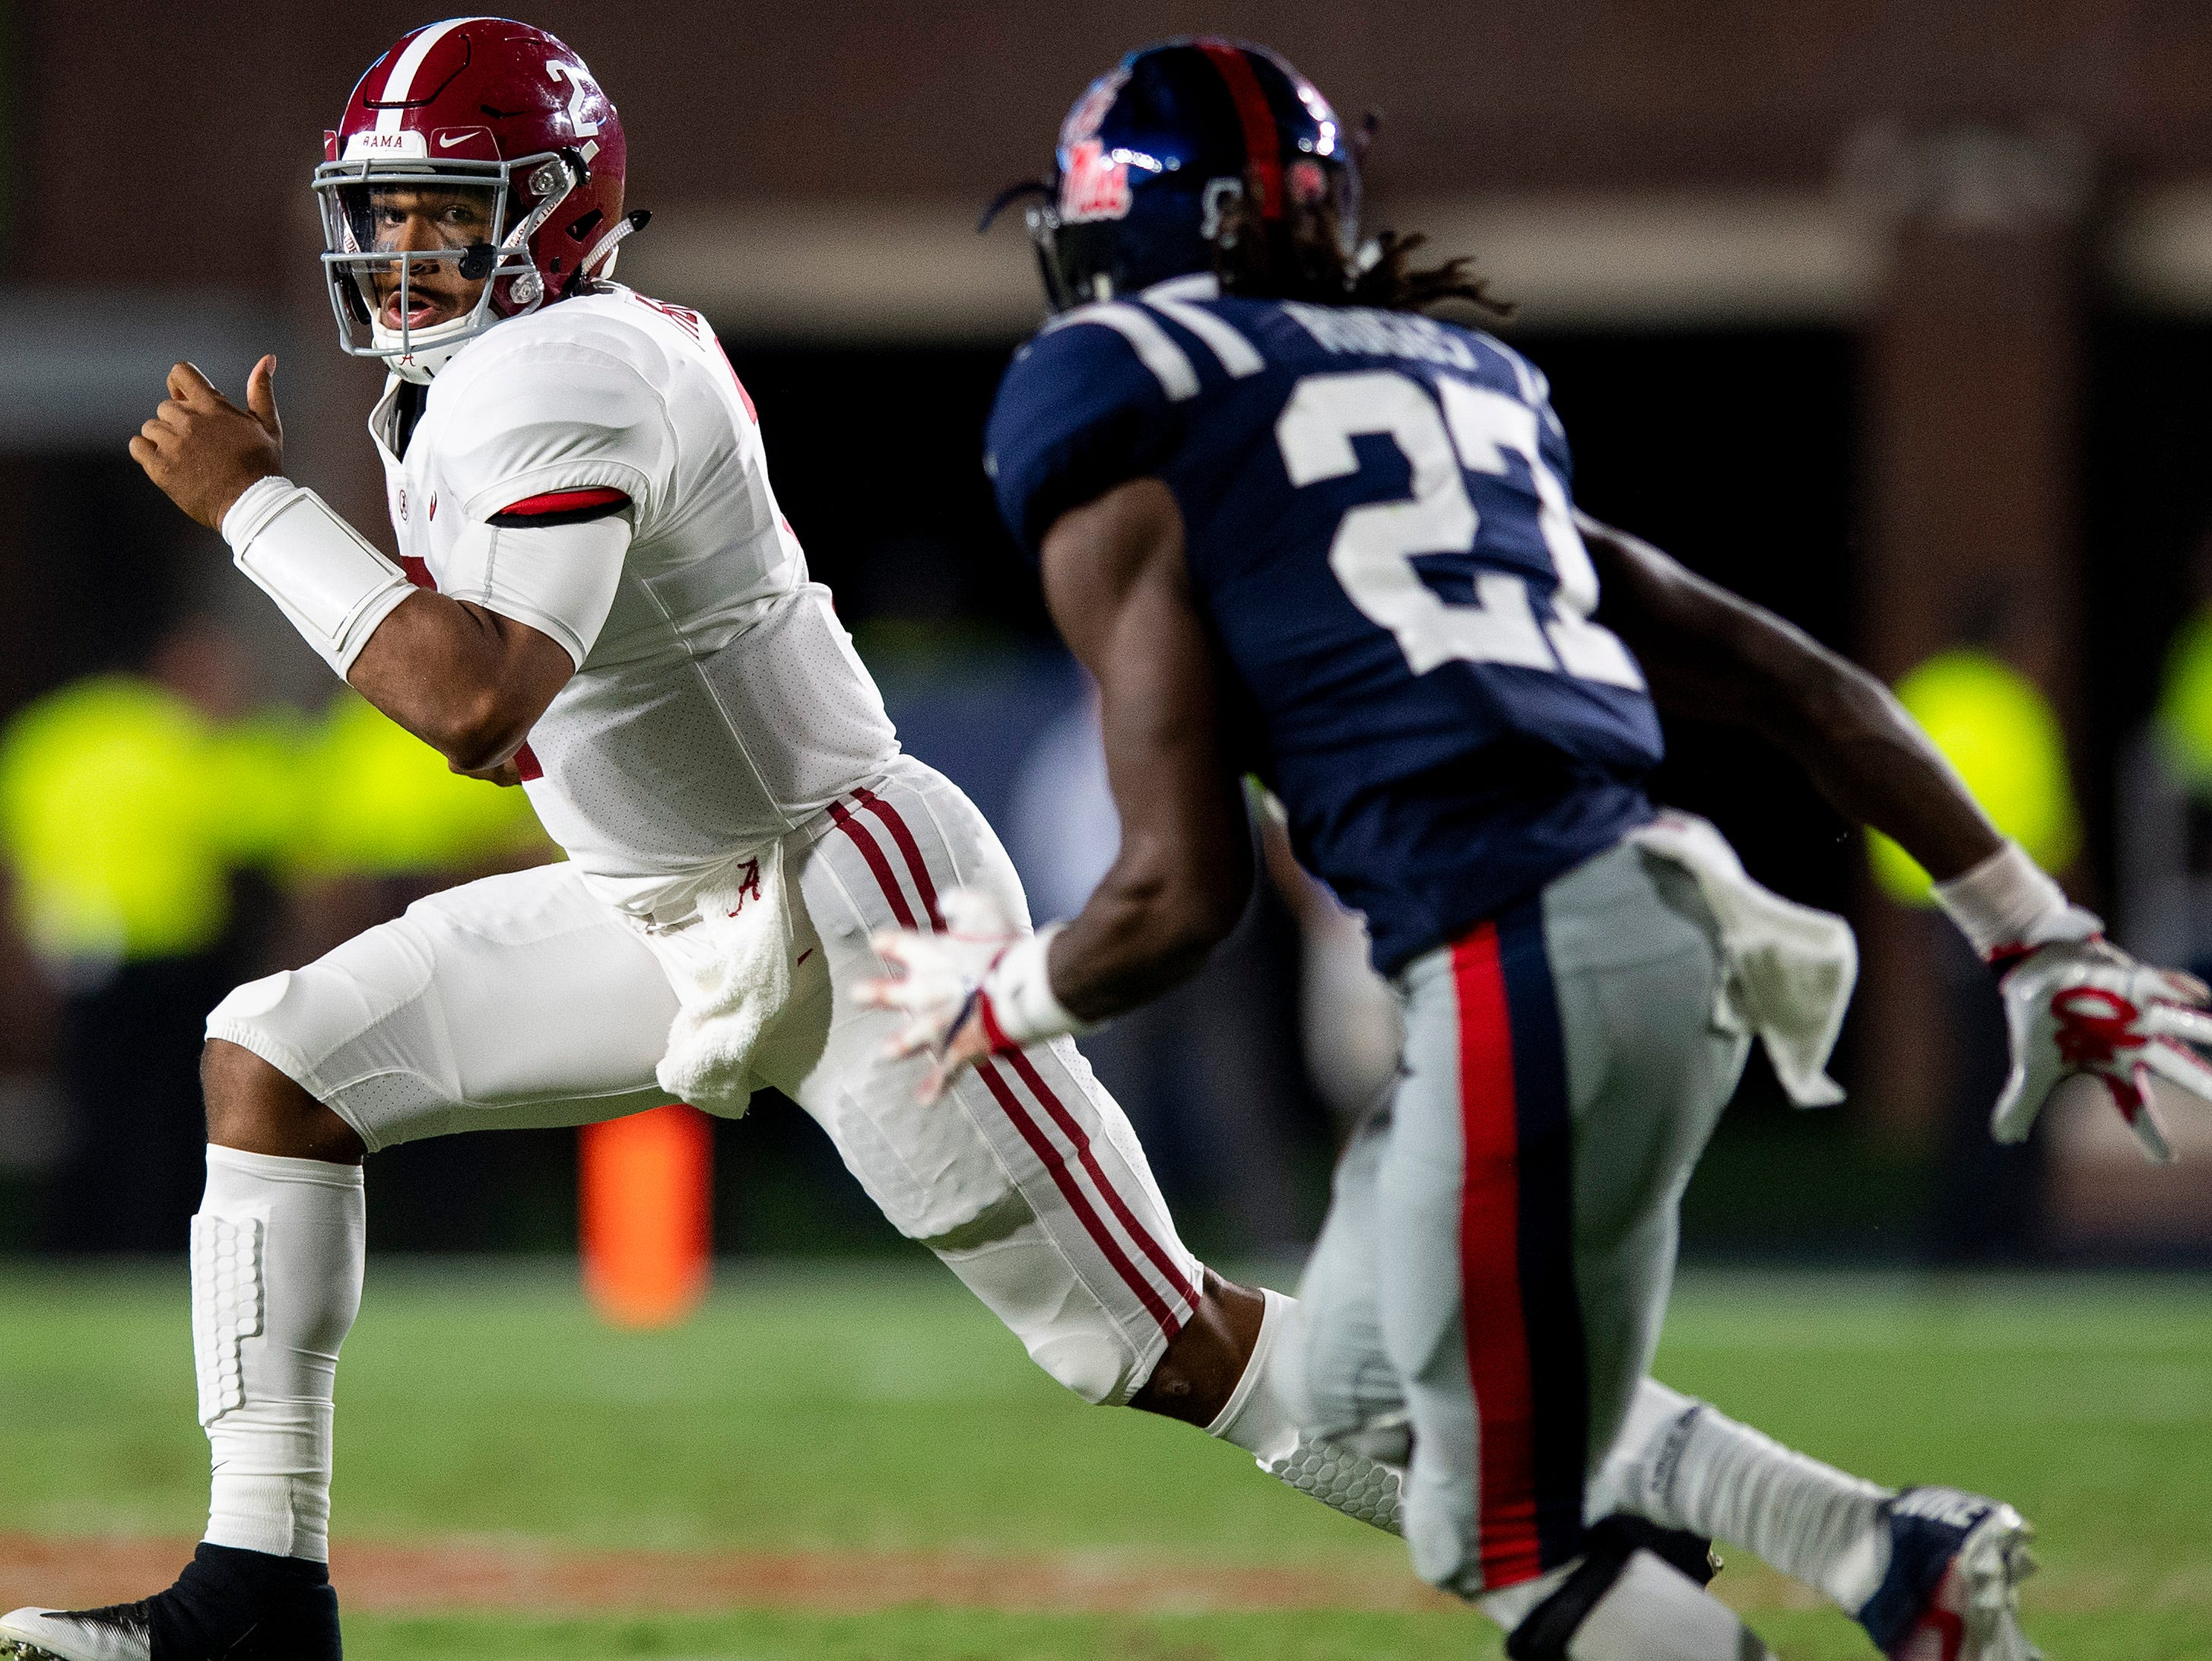 Alabama quarterback Jalen Hurts (2) carries against Ole Miss in first half action in Oxford, Ms., on Saturday September 15, 2018.